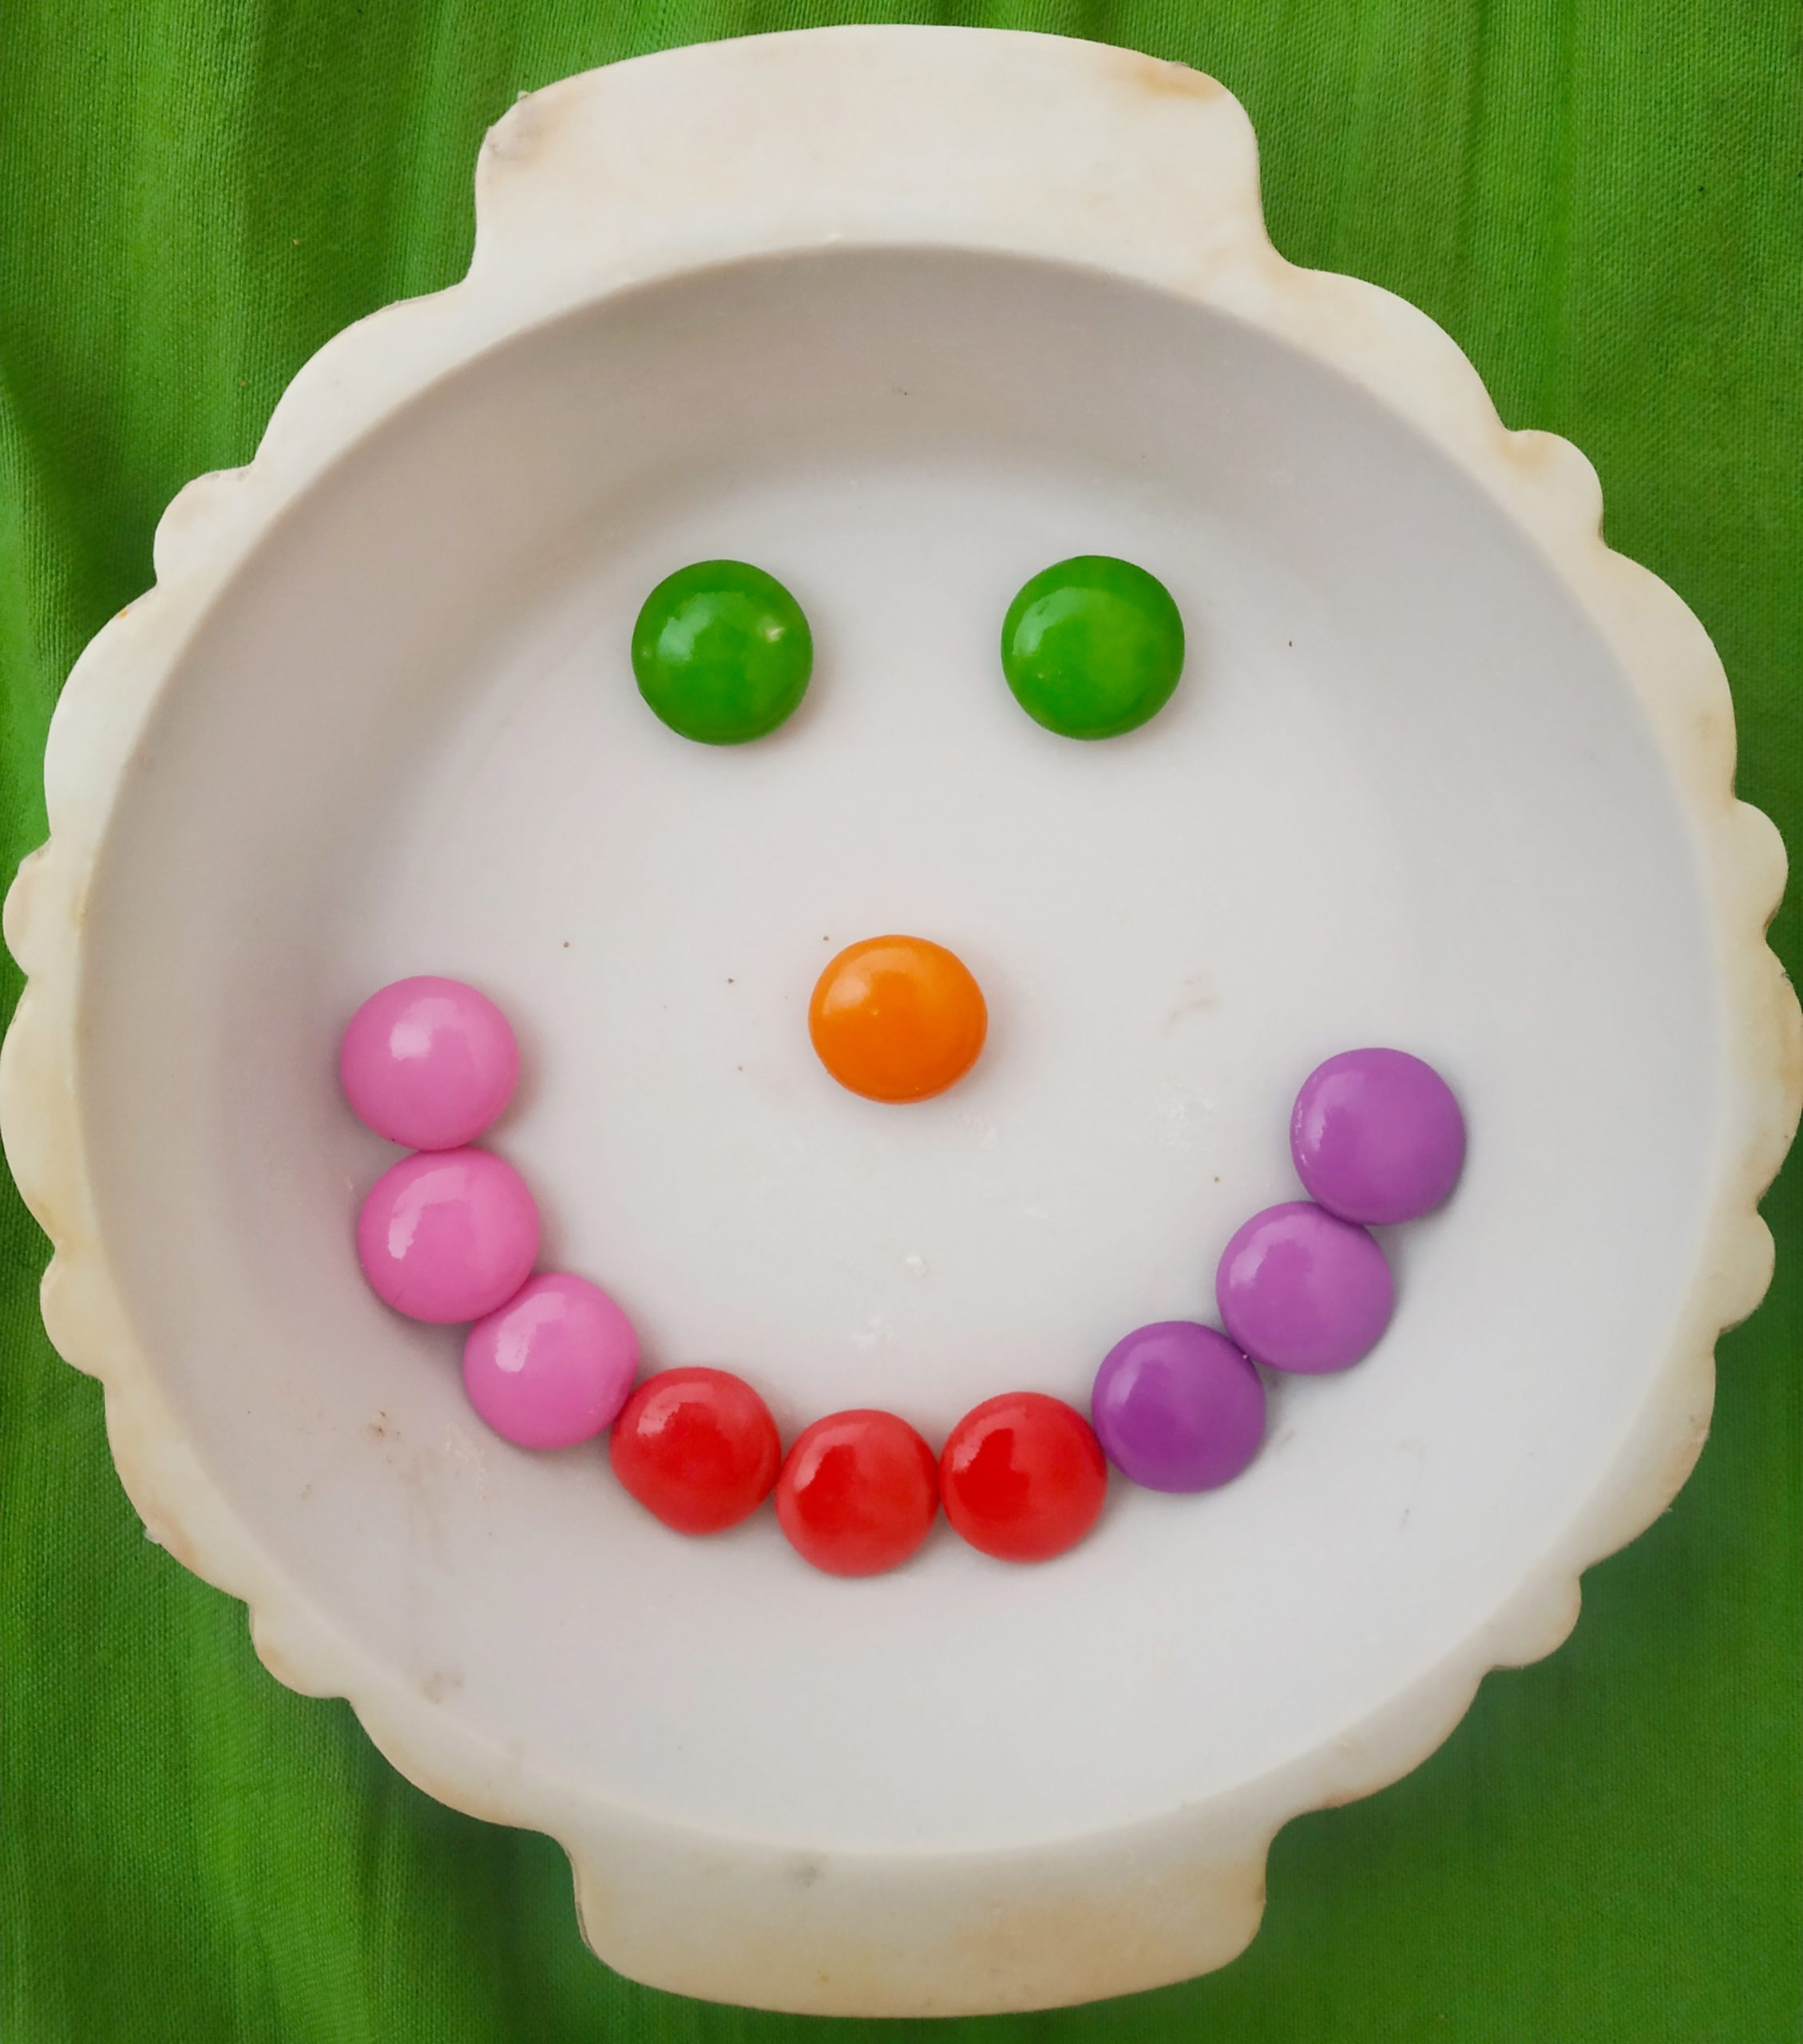 Smiley made with candies and plate